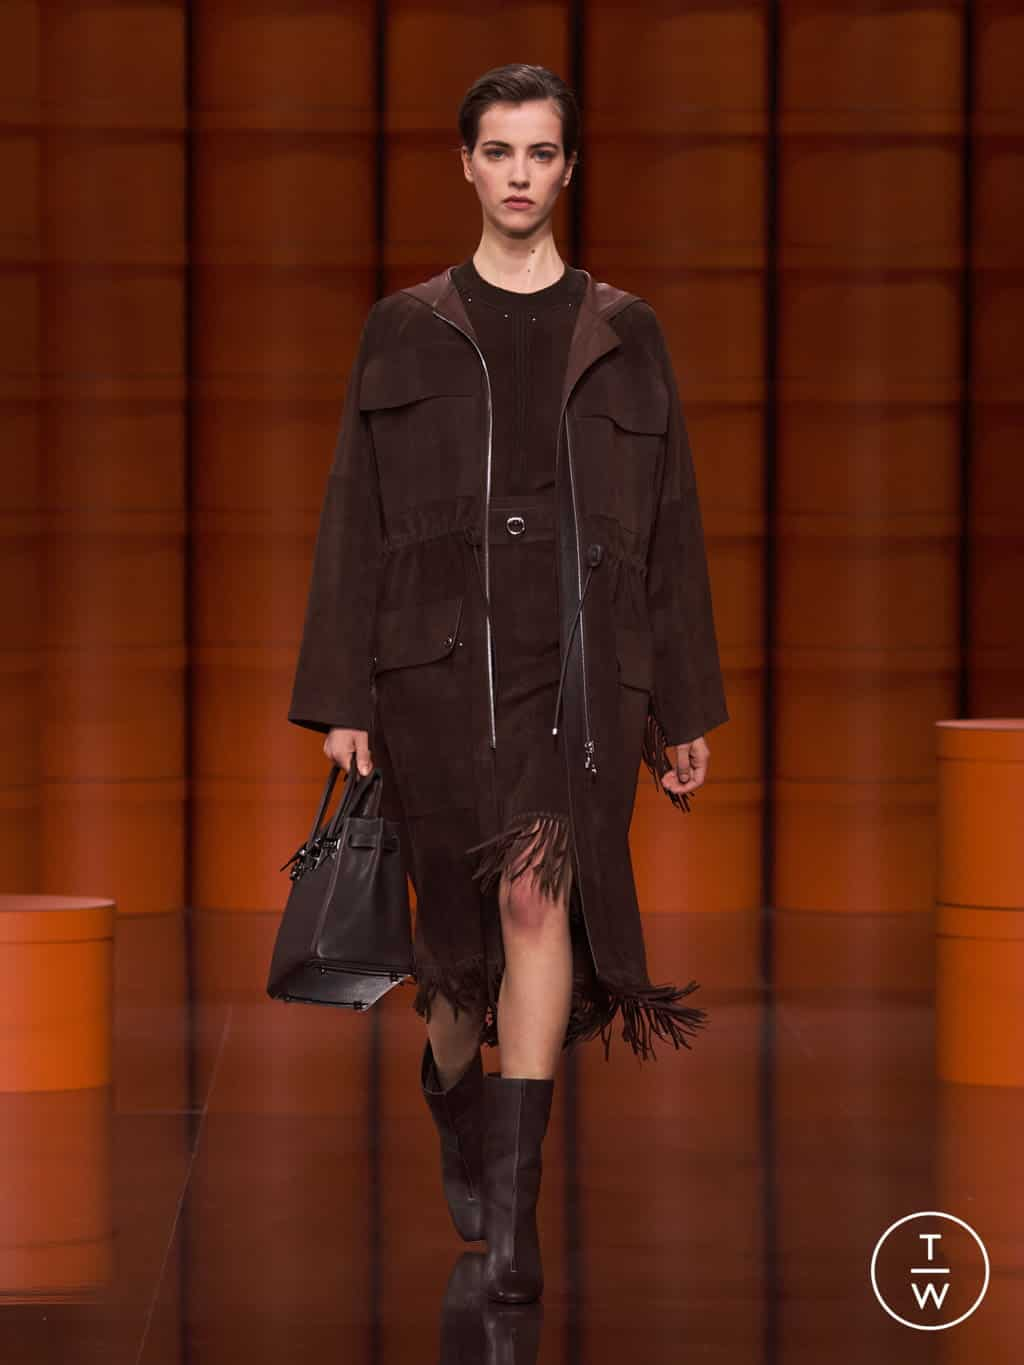 HERMÈS FALL/WINTER 2021 — Look 31